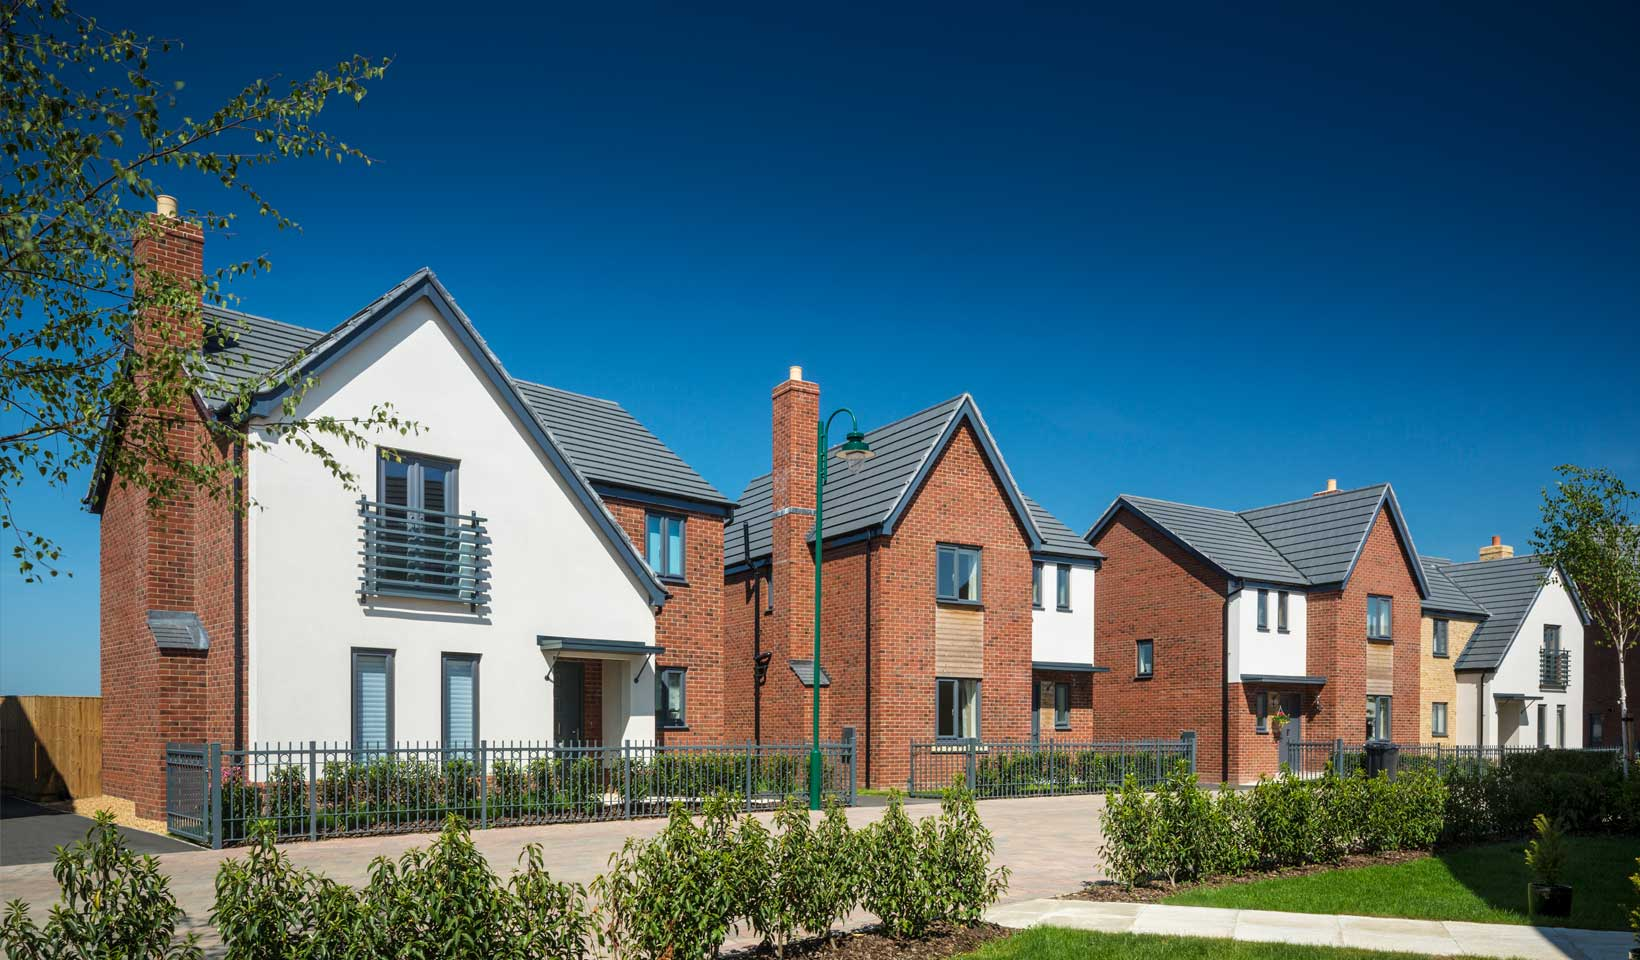 Morris homes at Wintringham